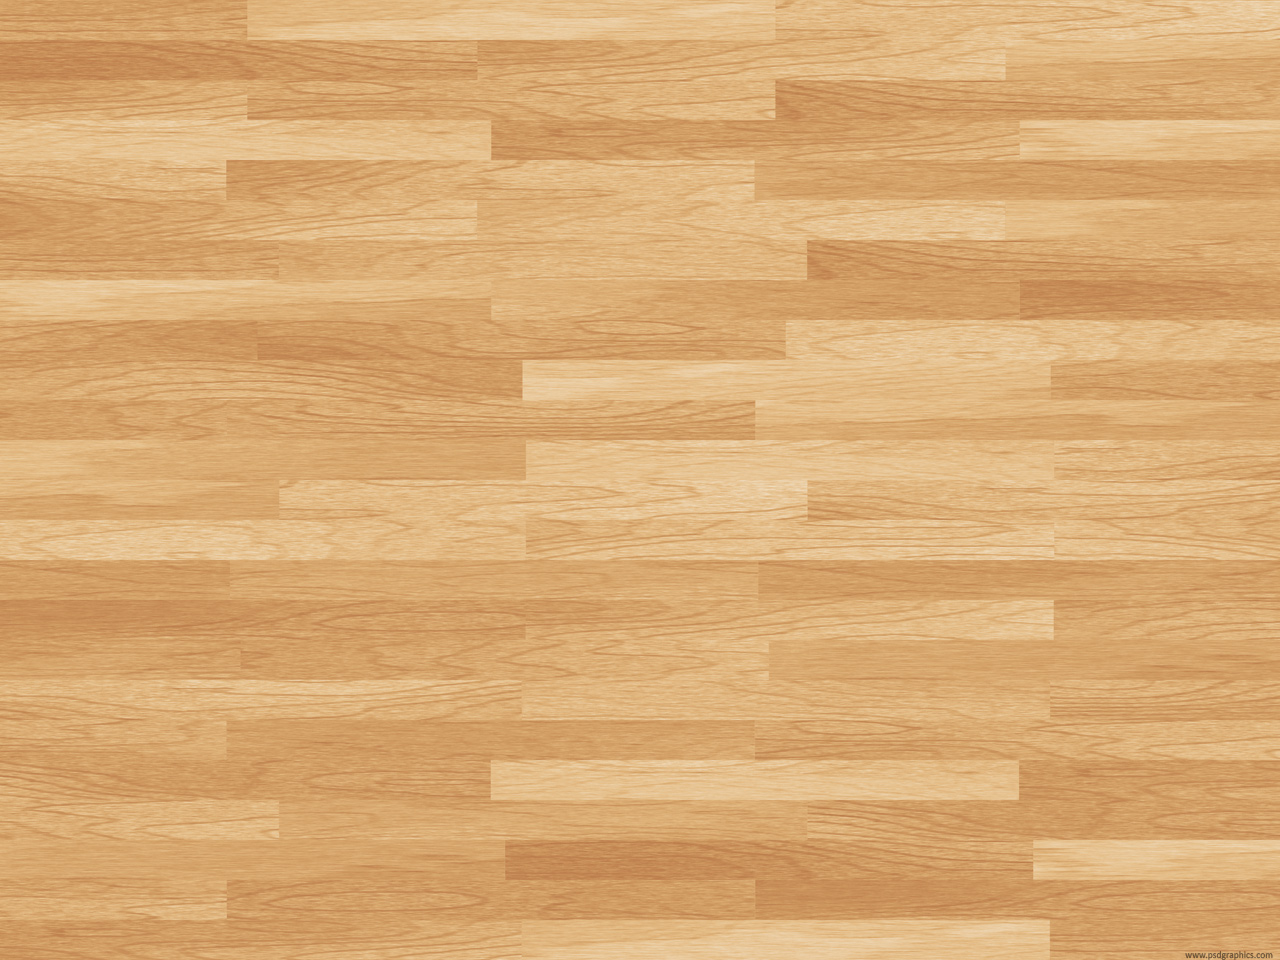 Basketball floor texture psdgraphics for Hardwood flooring